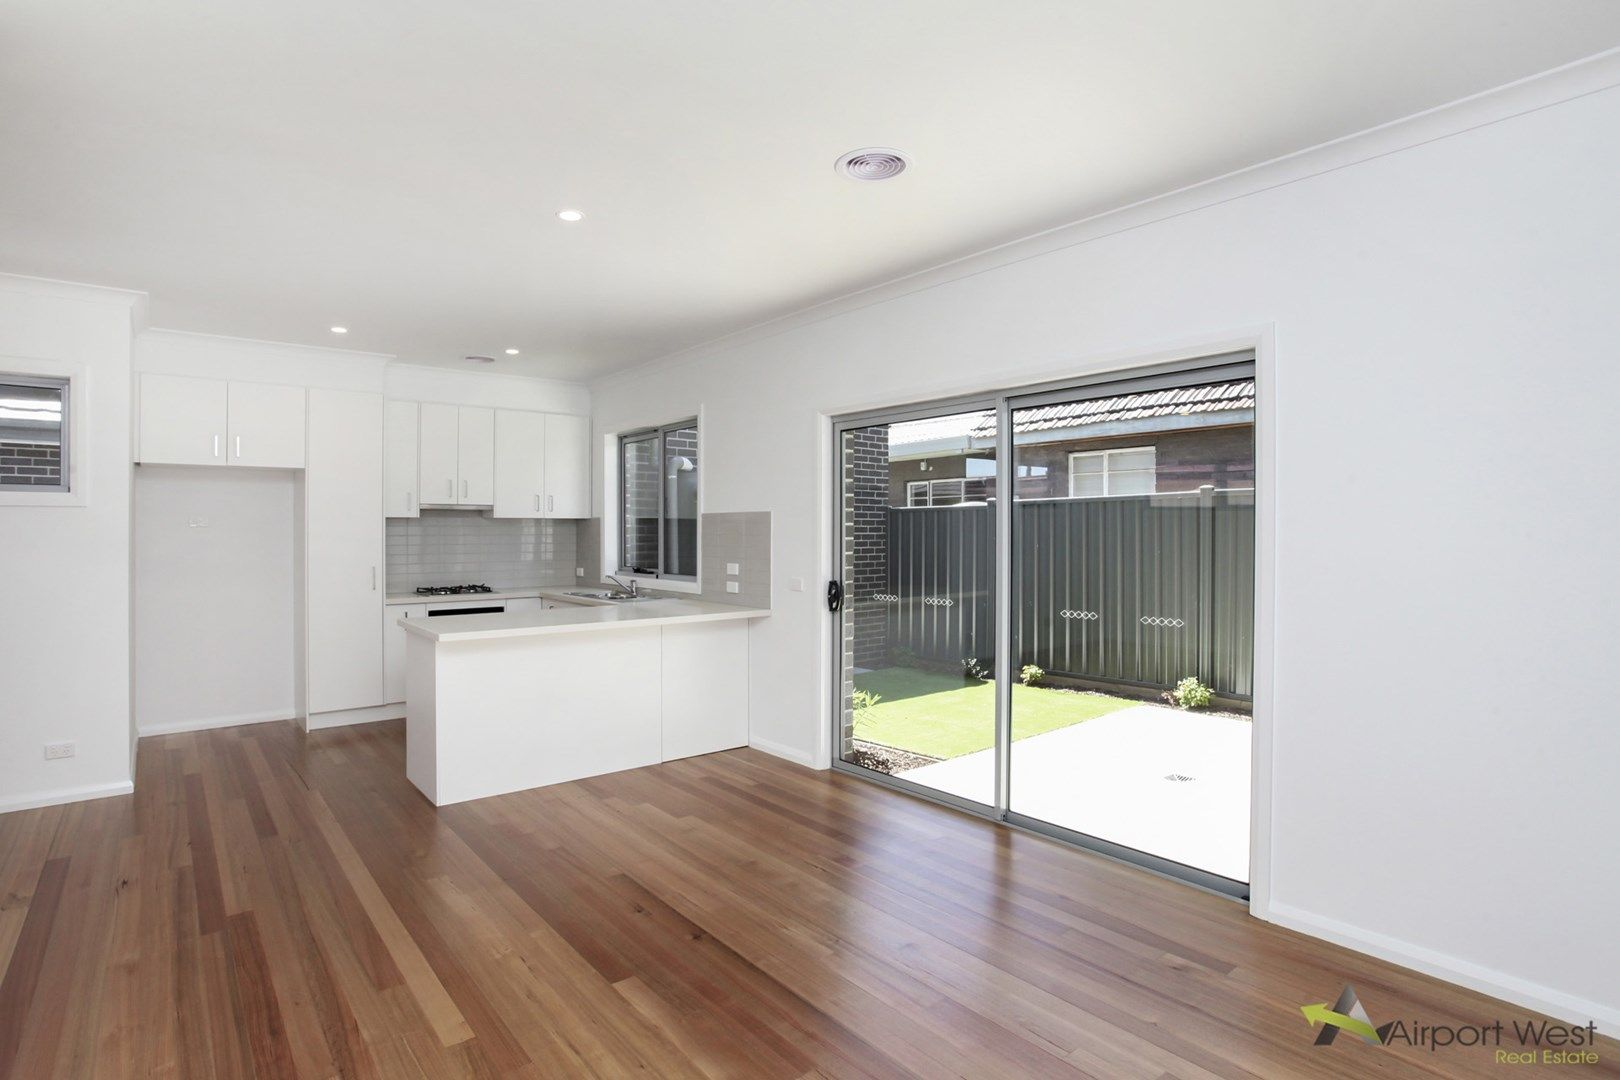 1/12 Hart Street, Airport West VIC 3042, Image 0